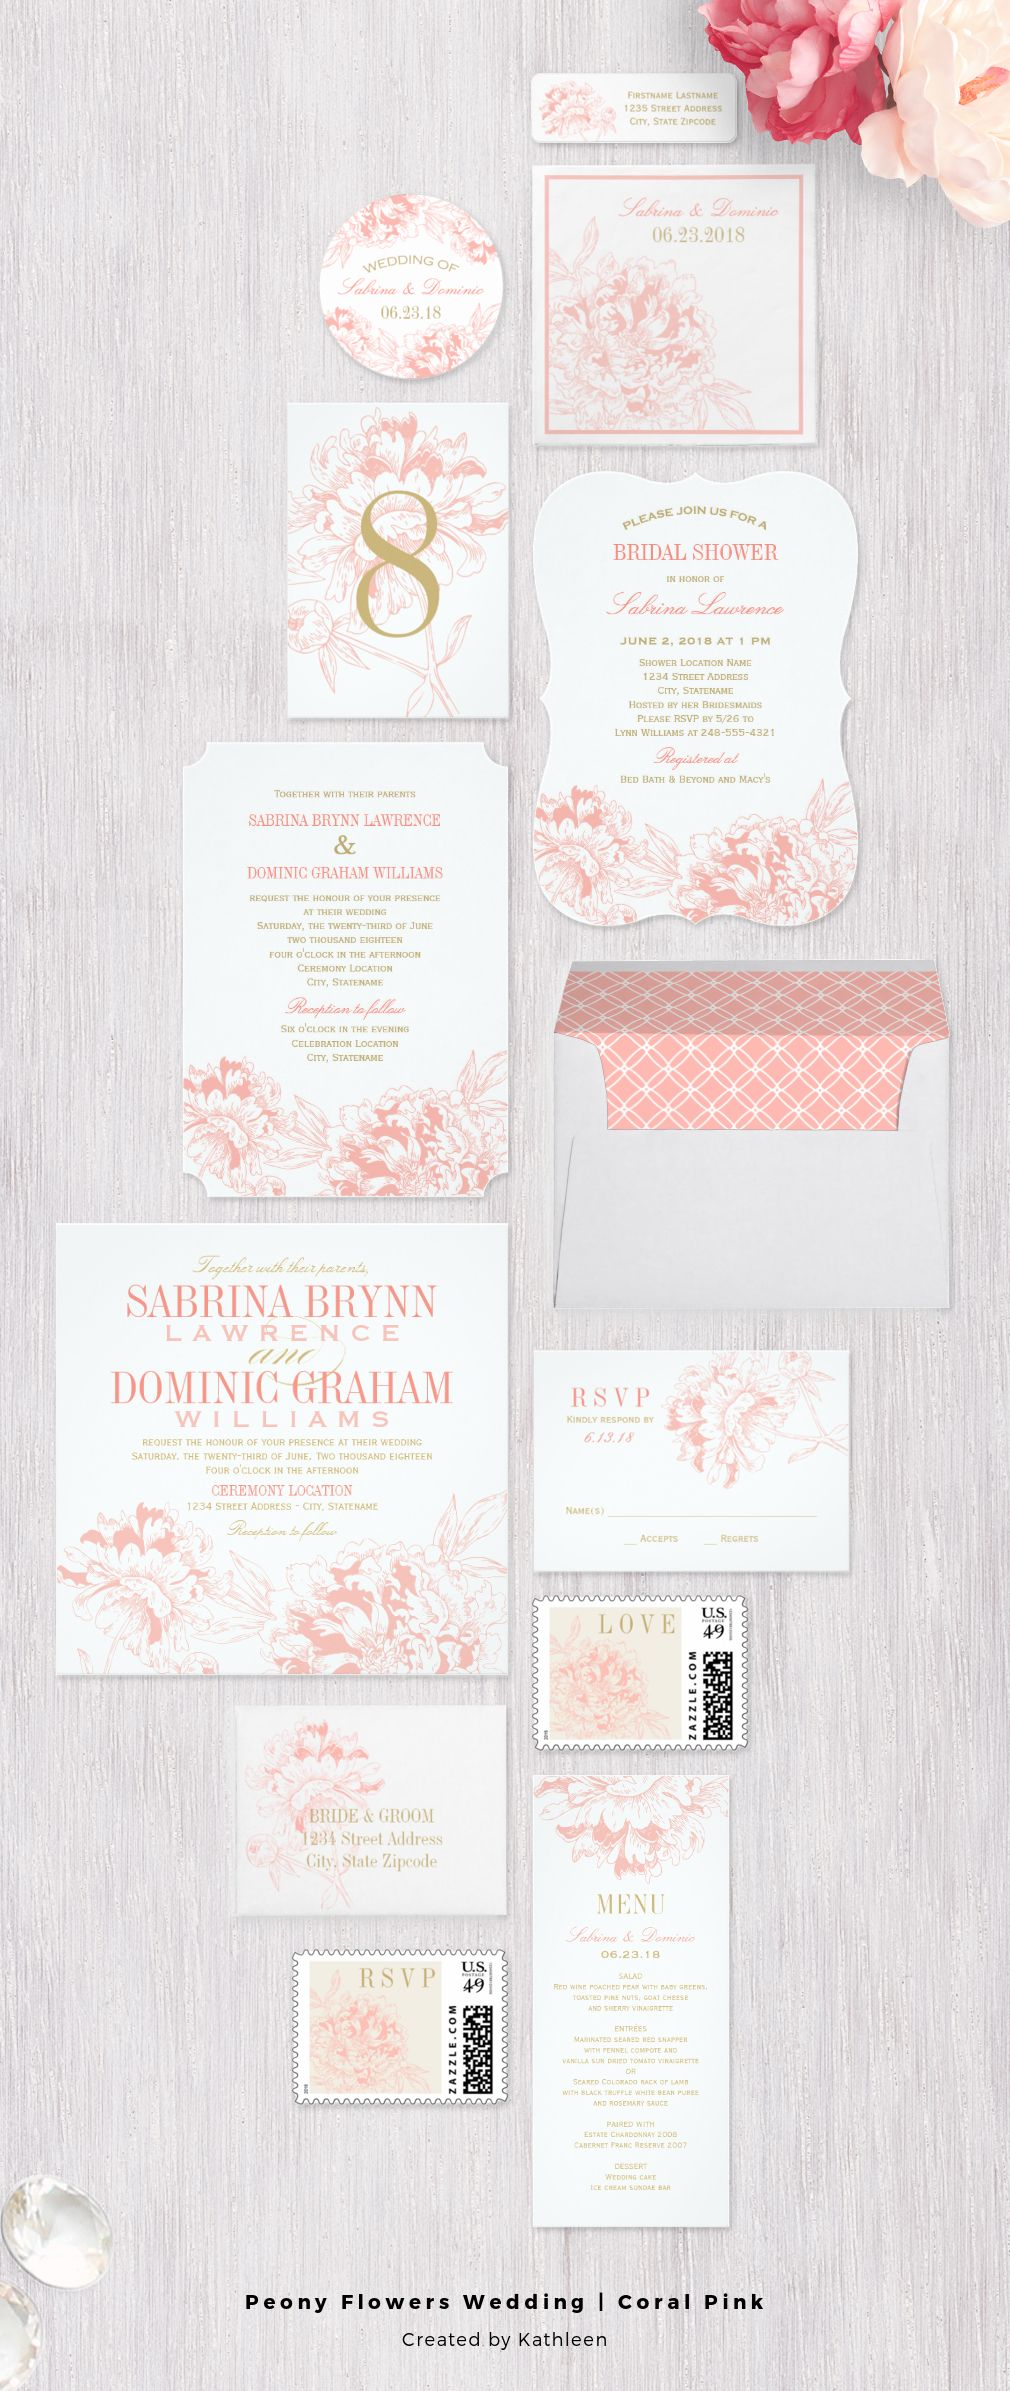 Romantic floral peony wedding invitation set collection in coral ...